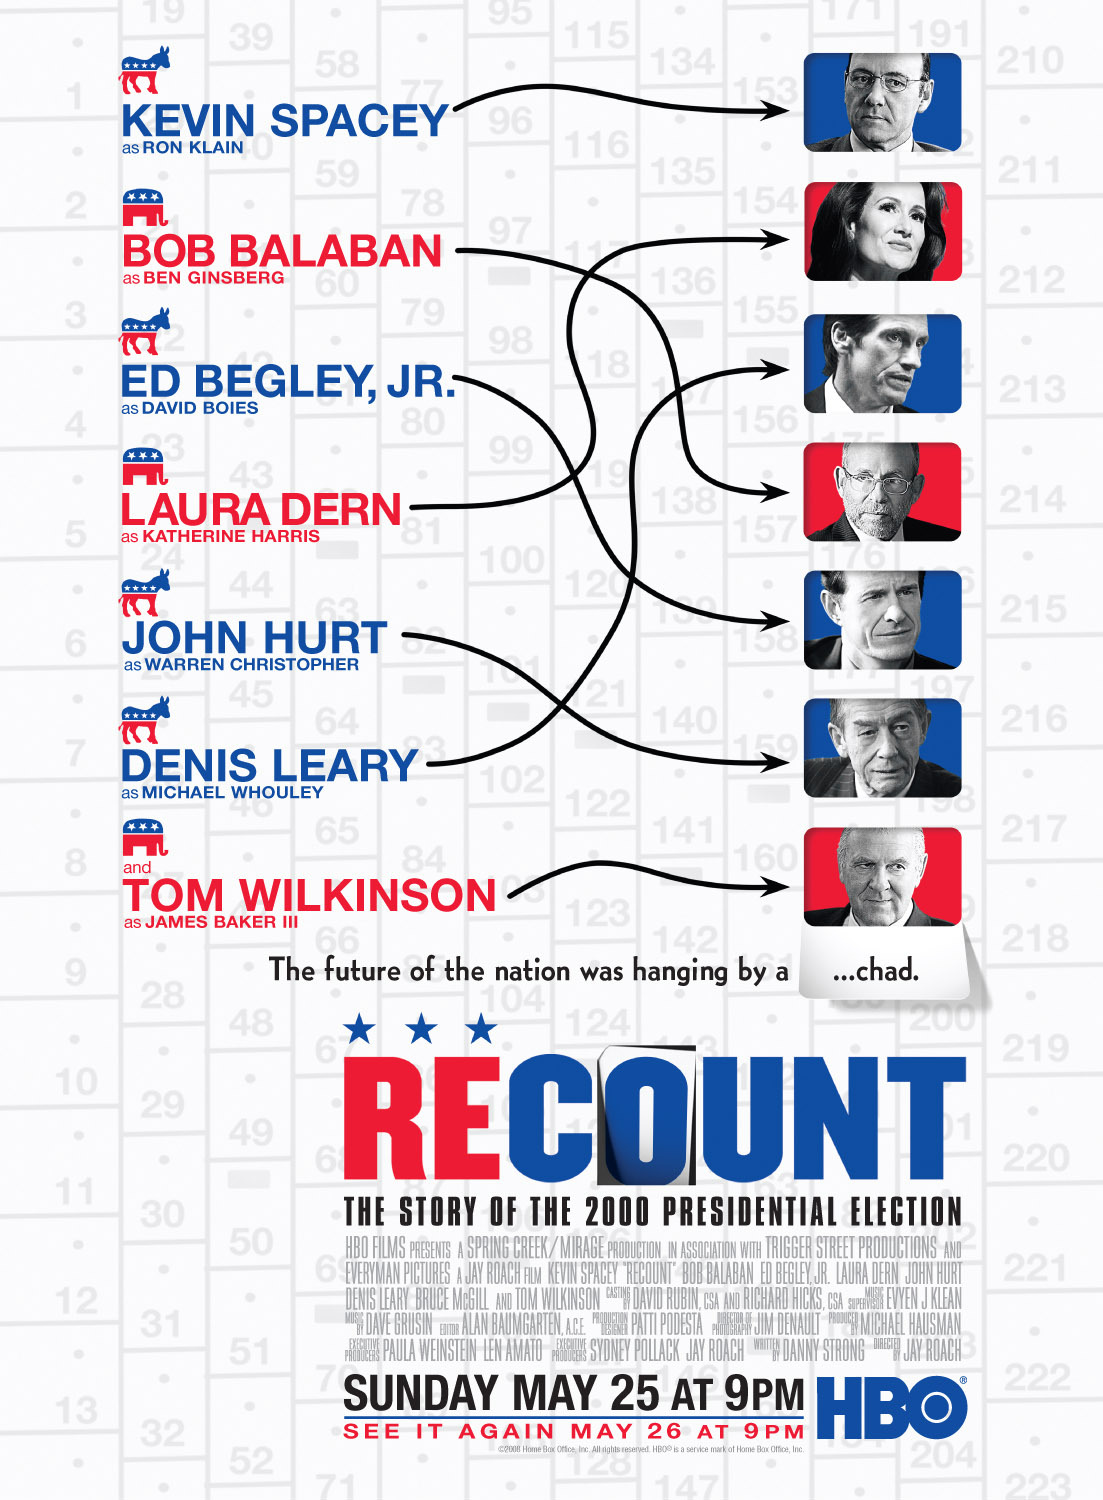 Recount - IMDbPro